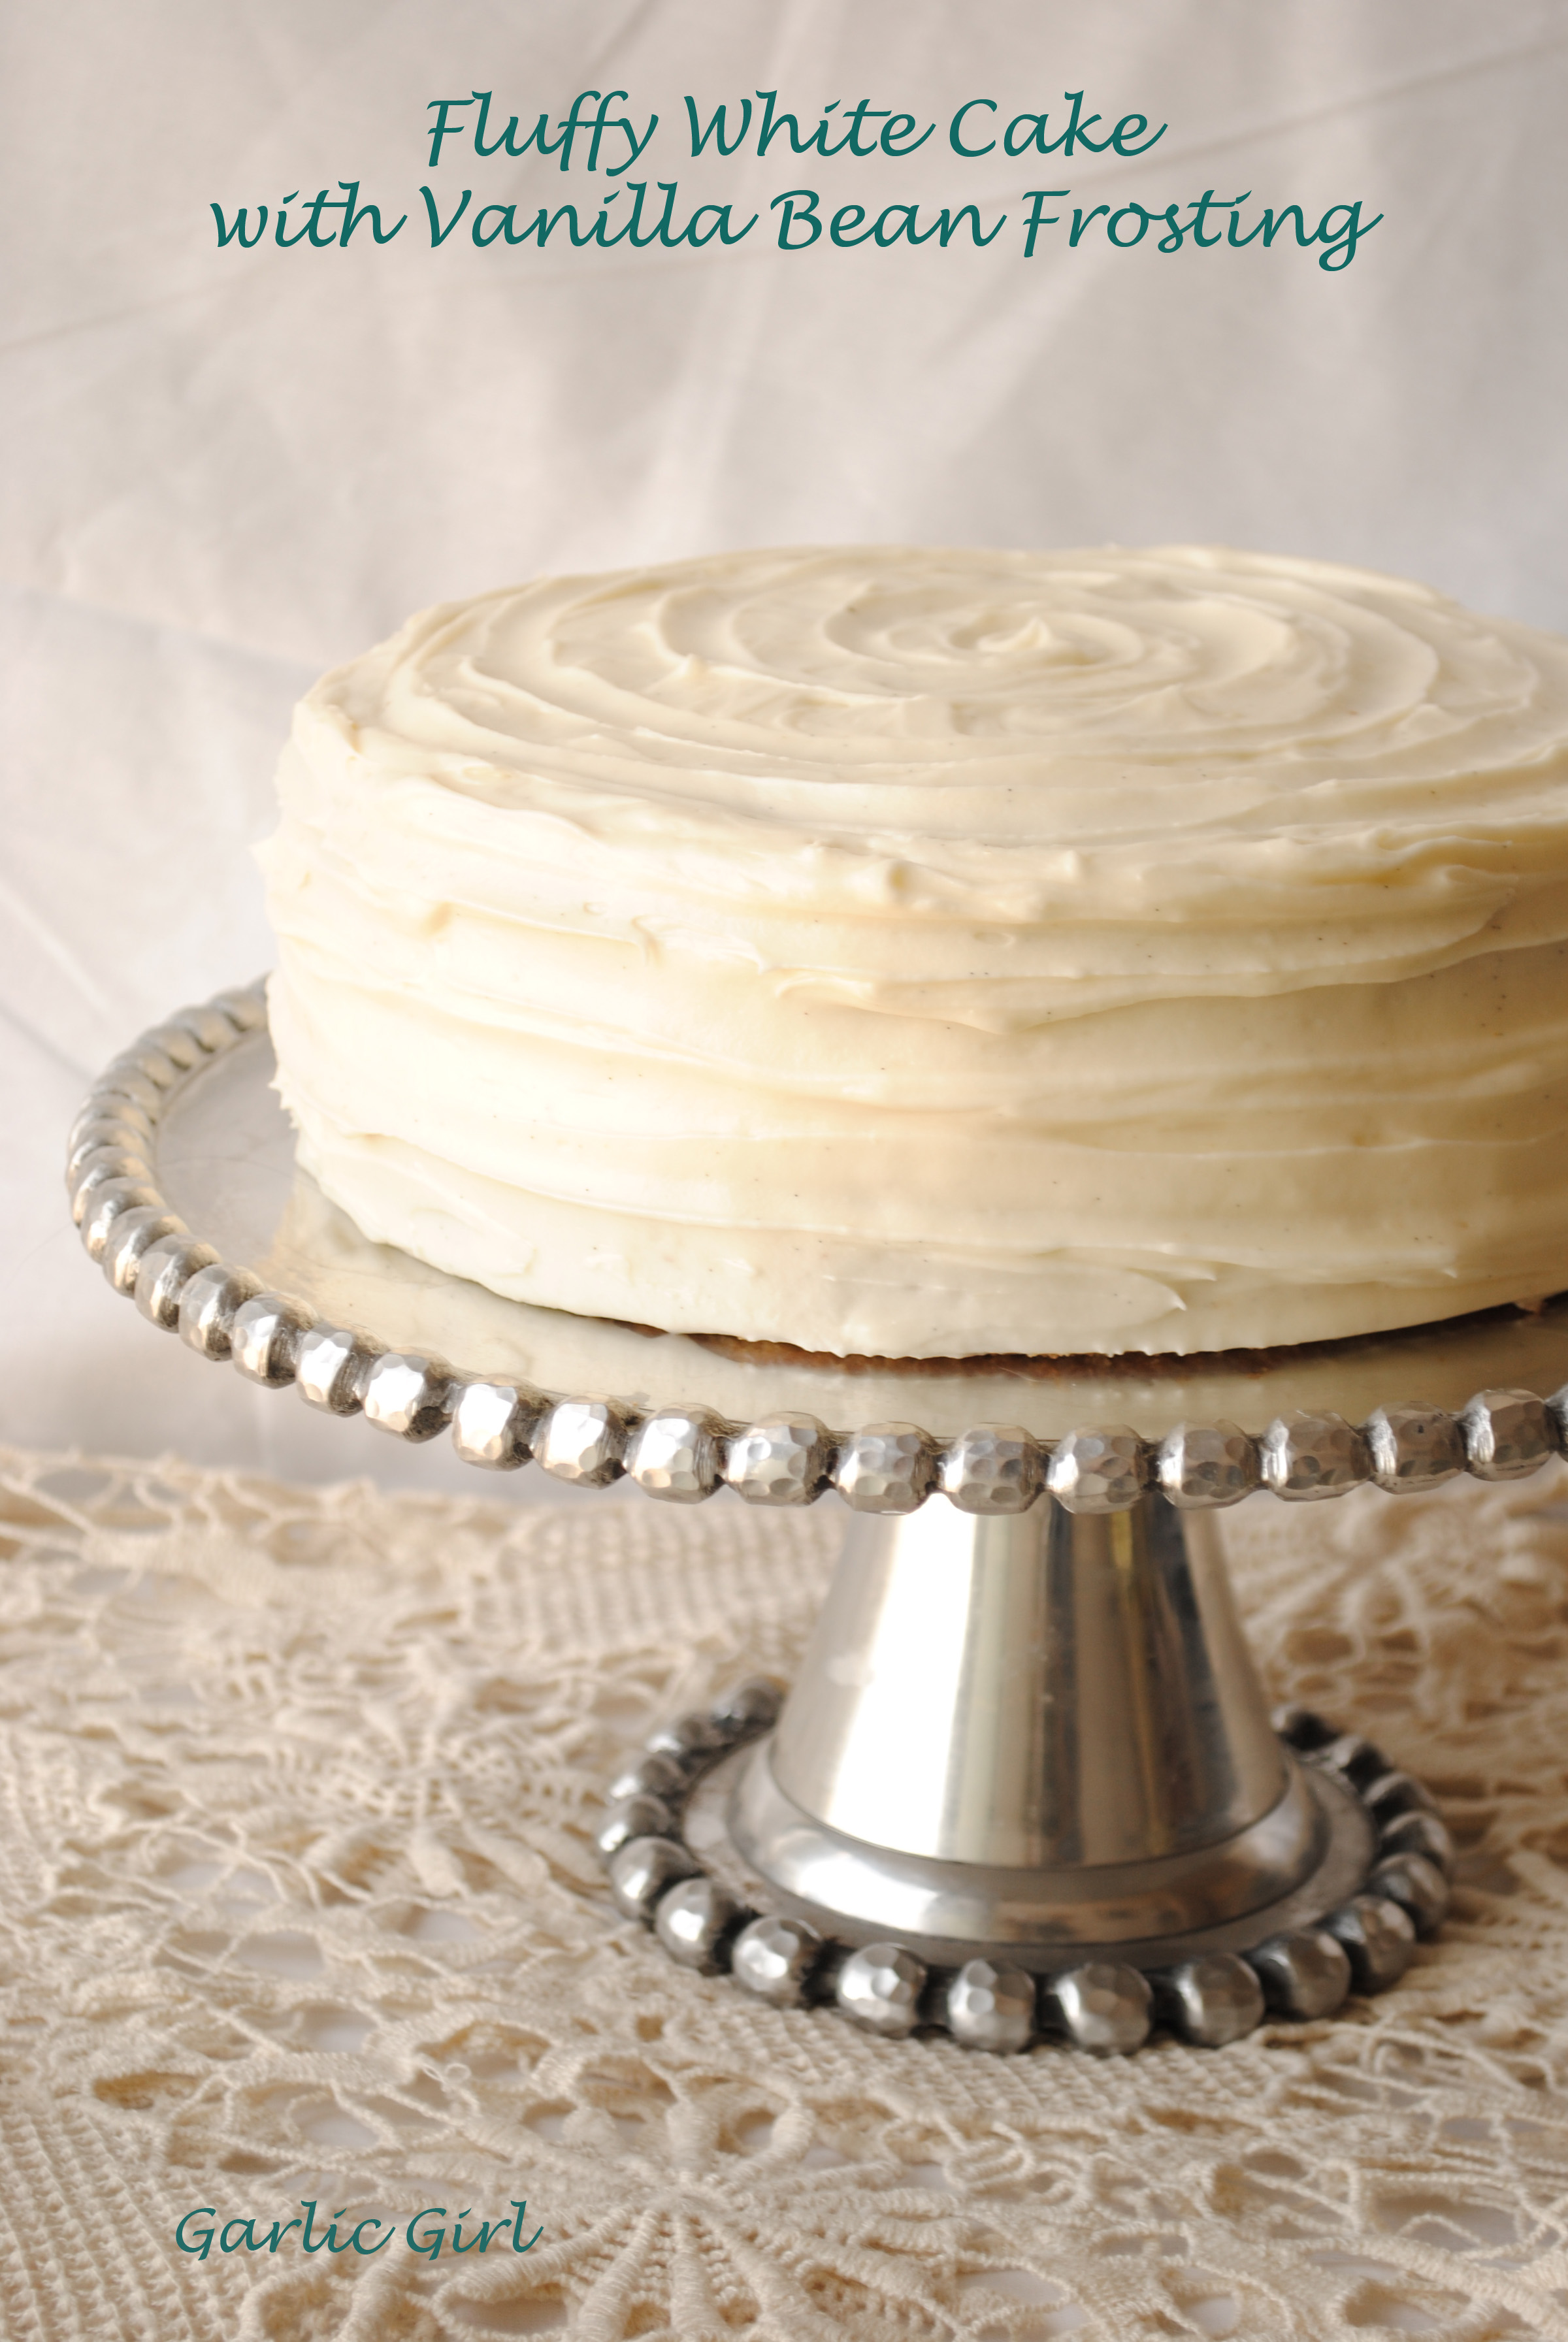 Fluffy White Cake with Vanilla Bean Frosting